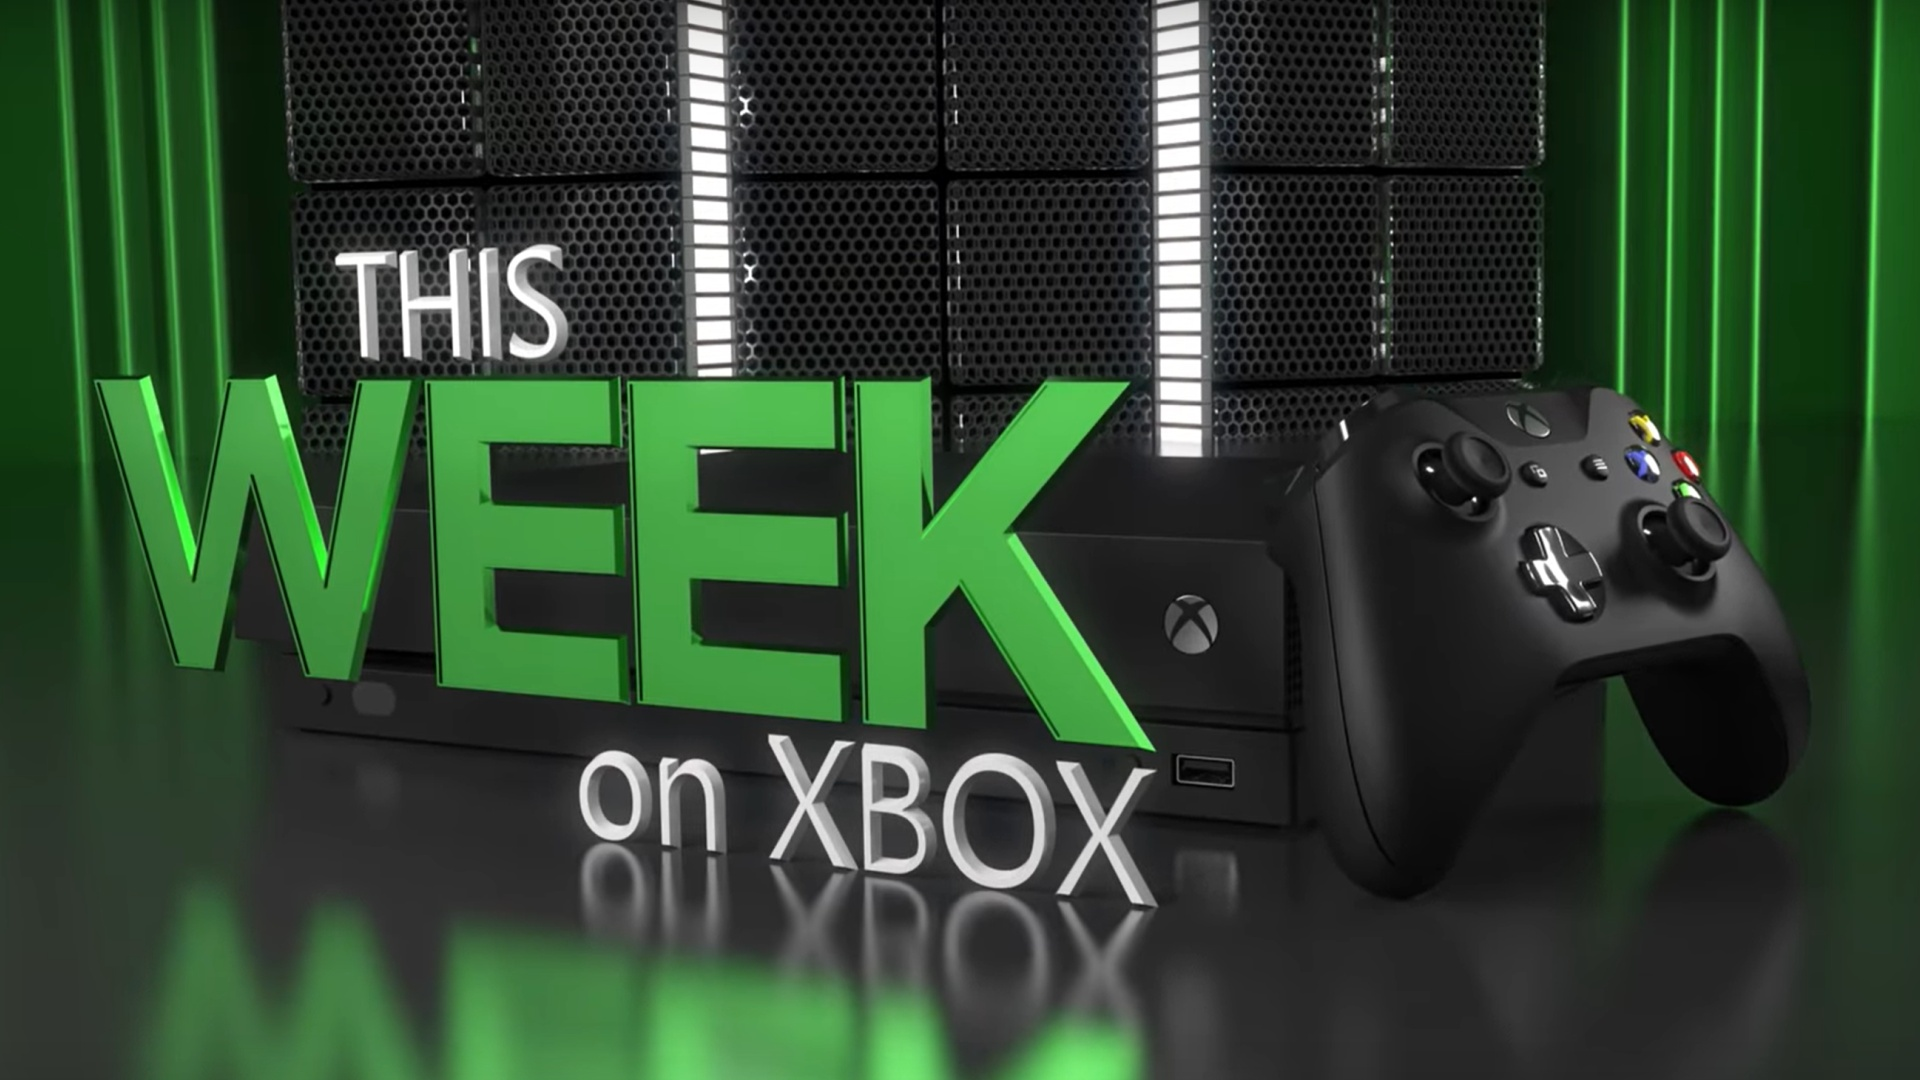 Video For This Week on Xbox: May 22, 2020